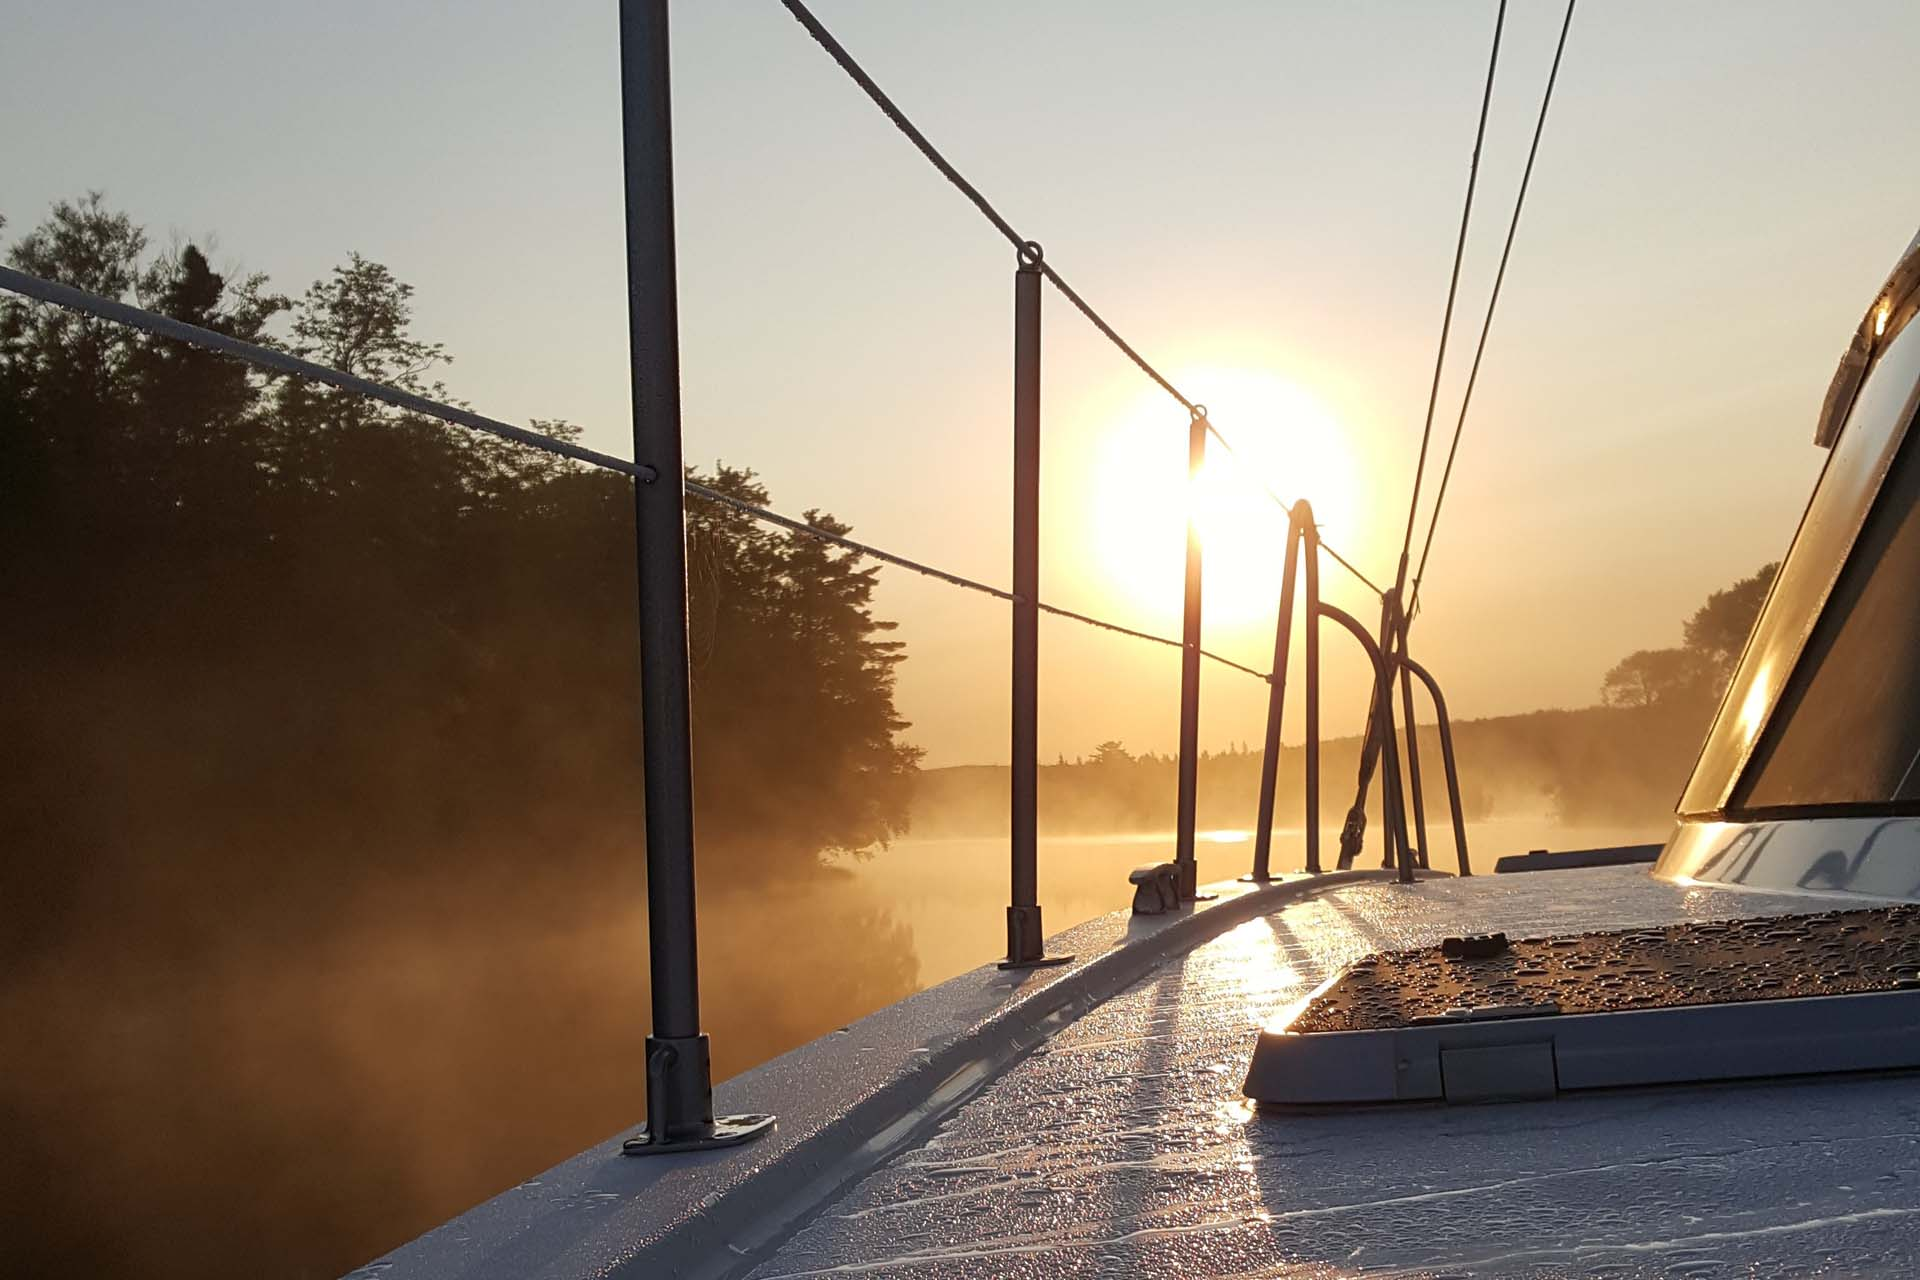 Sunrise through mist on the Bras D'Or Lake as seen from the deck of the Cape Bretoner luxury catamaran